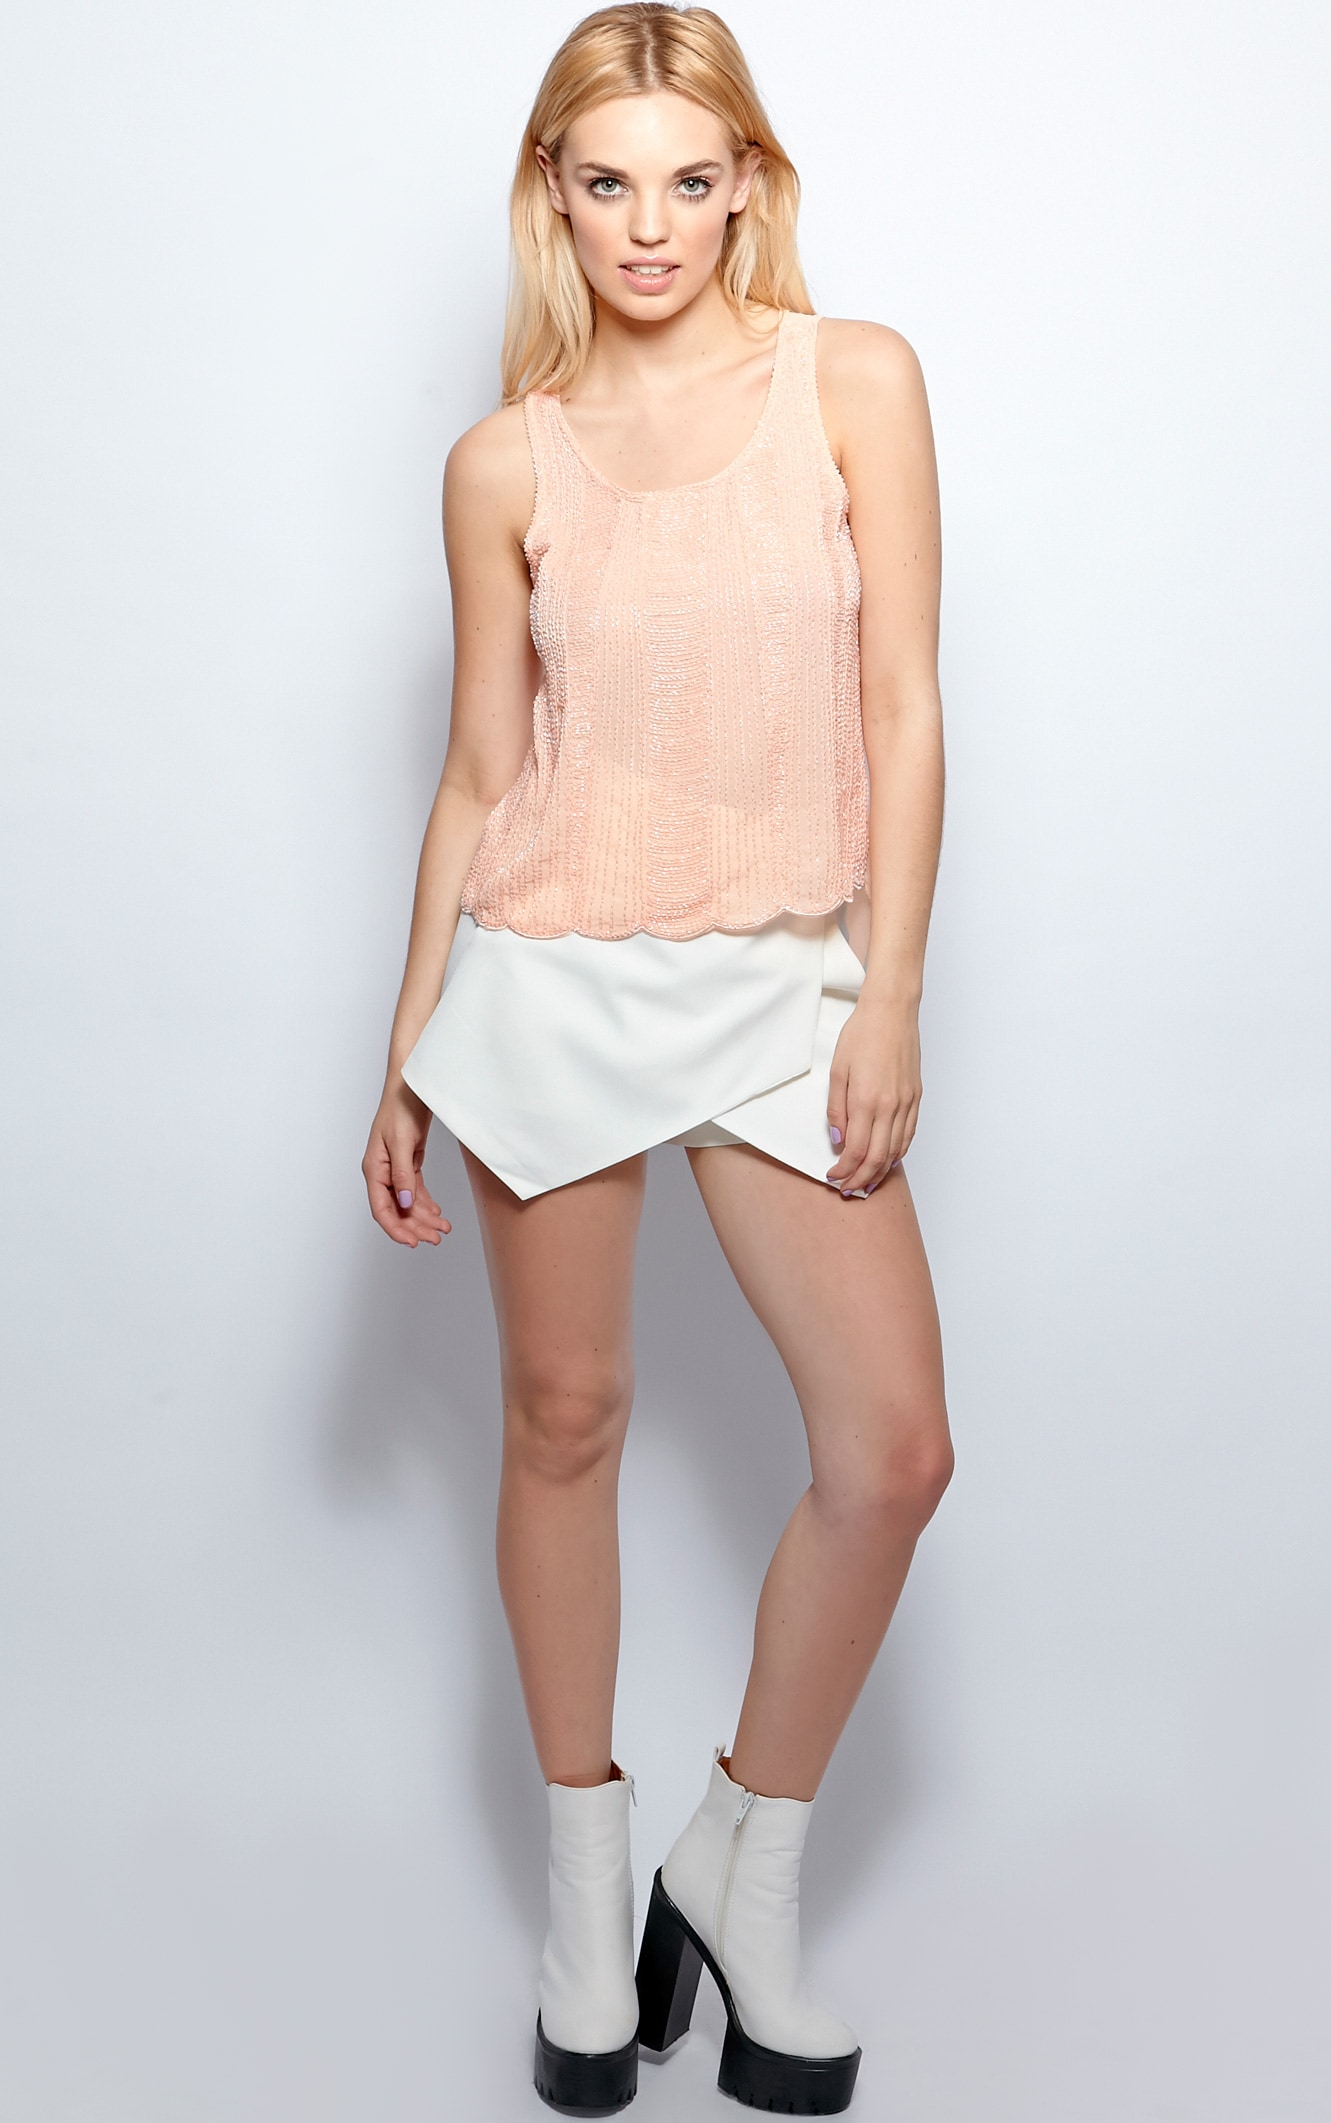 Raine Peach Embellished Cami  5